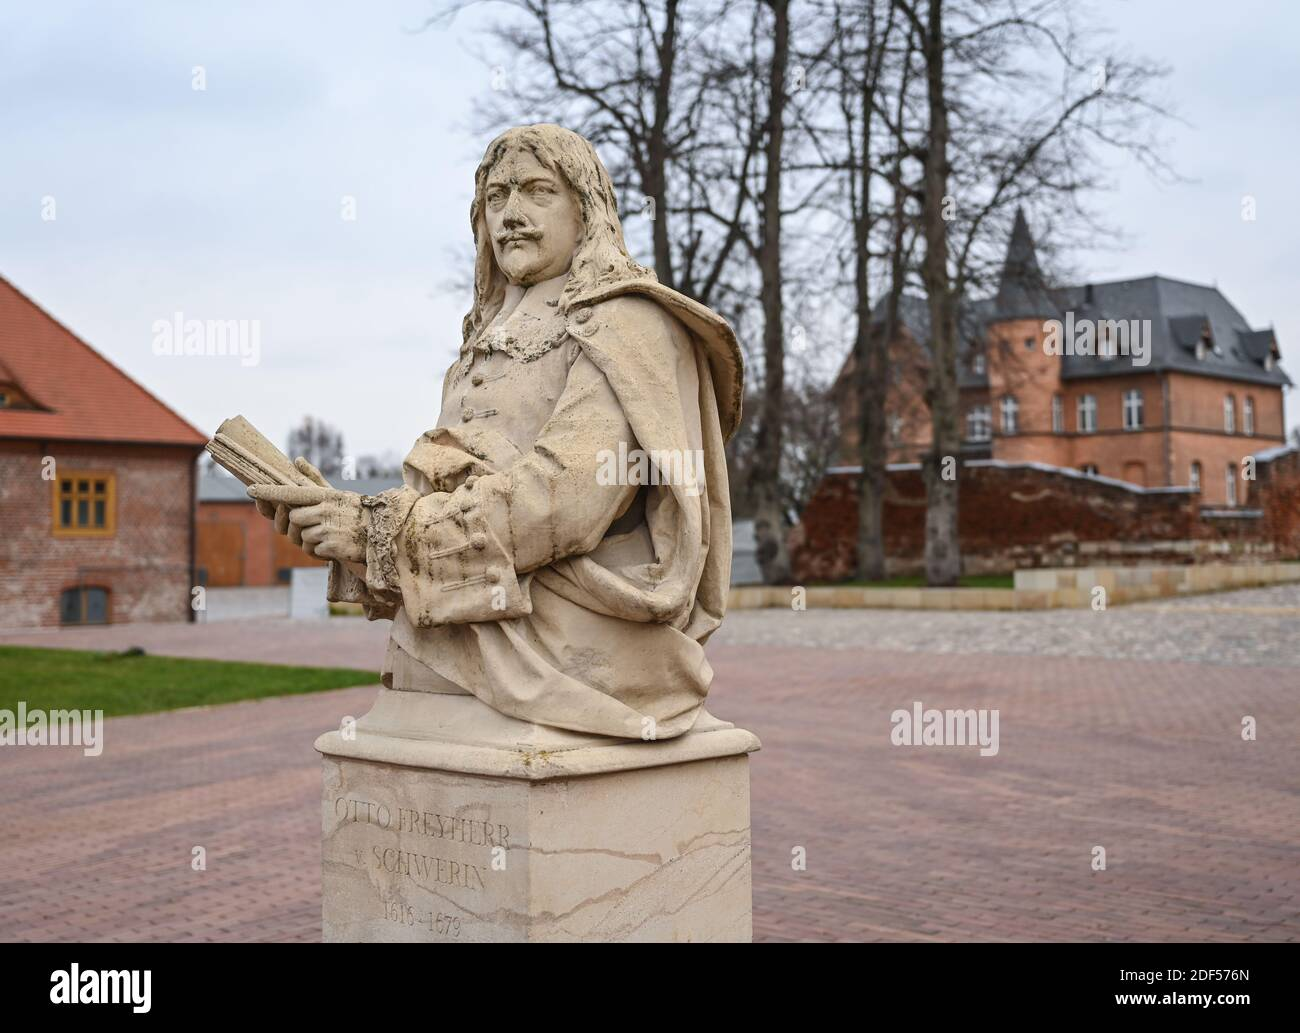 01 December 2020, Brandenburg, Altlandsberg: A sandstone bust of Otto Freyherr von Schwerin (1616 - 1679) can be seen on the grounds of the former Hohenzollern castle.  The fact that a Hohenzollern castle once stood in Altlandsberg was not known even to some of the locals for a long time. In the meantime, the renovated, listed castle ensemble has become a popular excursion destination, this year awarded the Brandenburg Tourism Prize. Photo: Patrick Pleul/dpa-Zentralbild/ZB Stock Photo